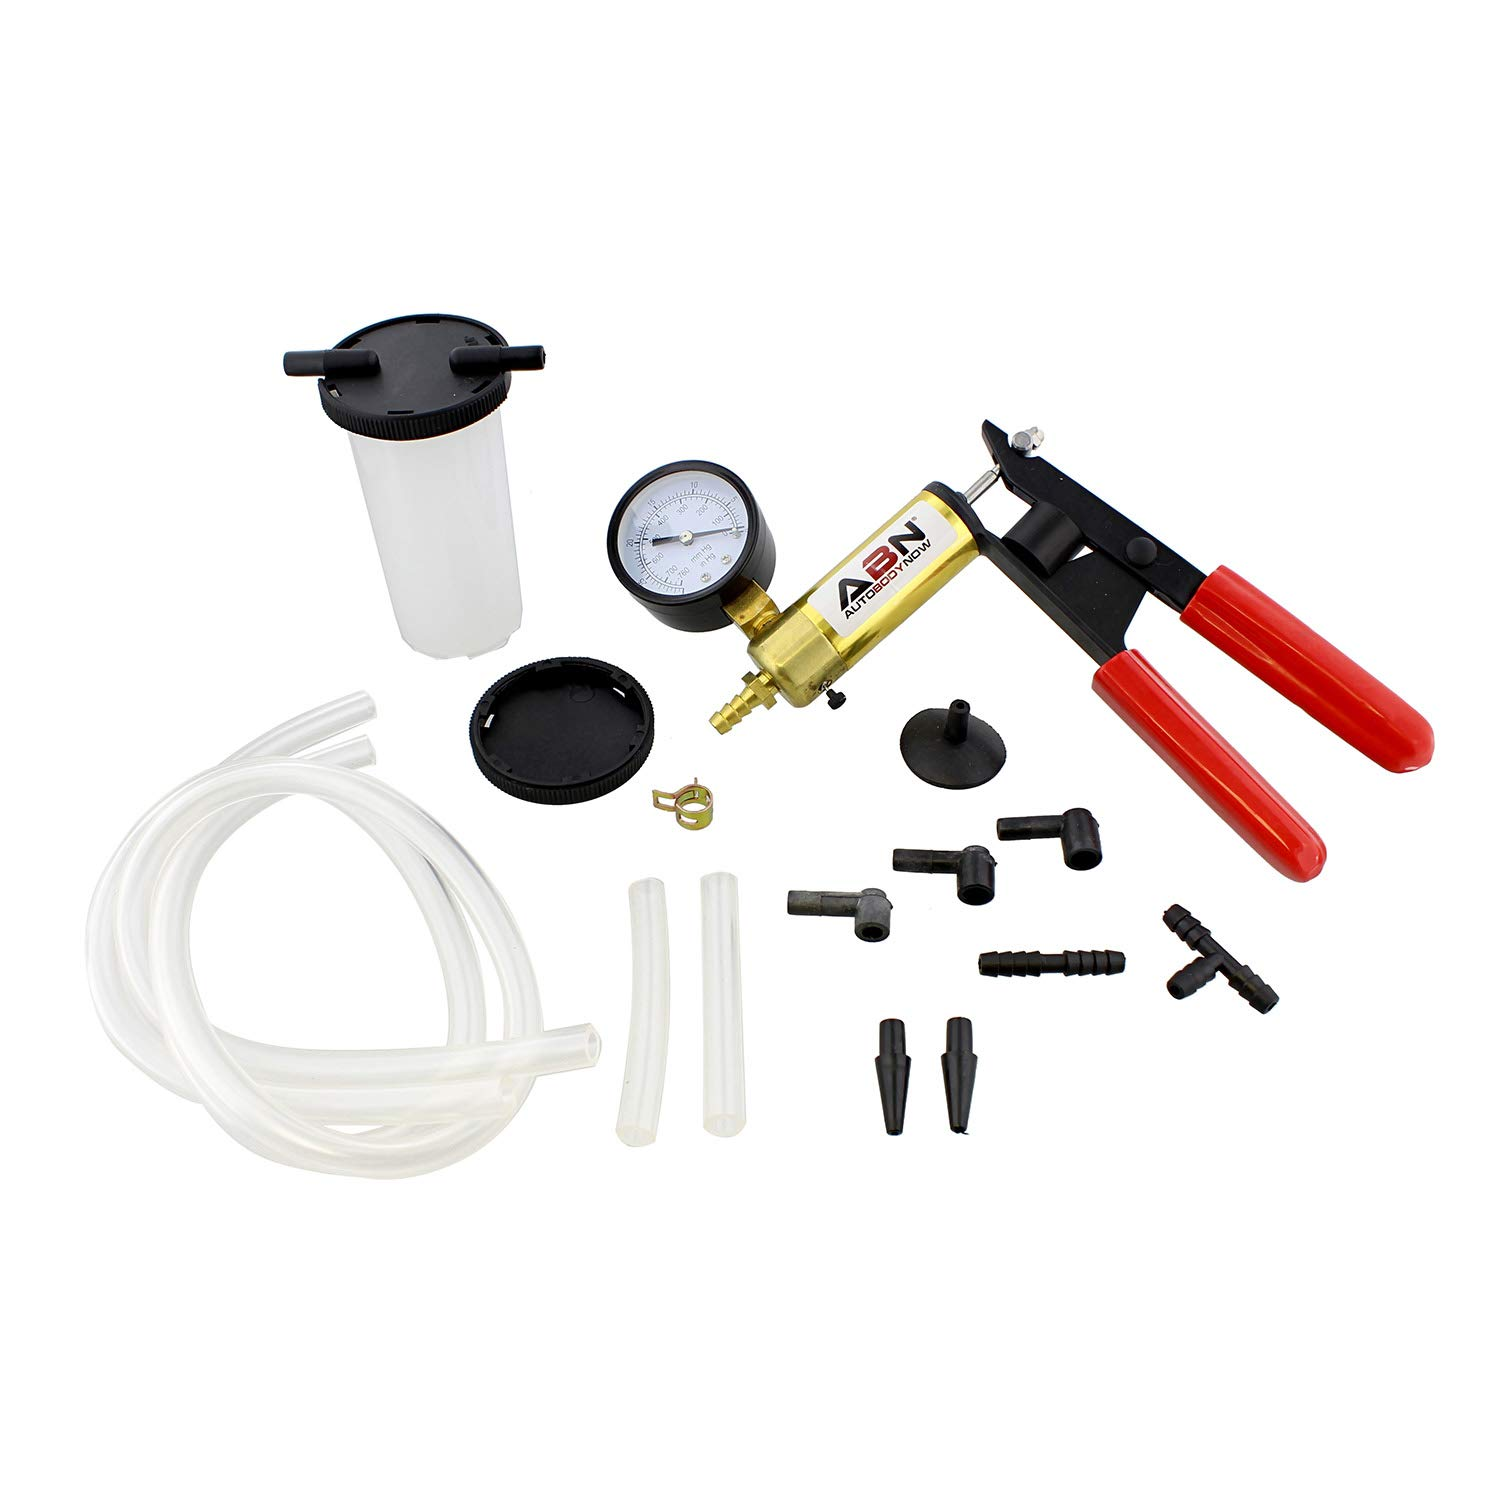 ABN Brake Bleeder Kit Universal Vacuum Pump & Brake Bleeding Tester Set for Automotive Service & Airtight Food Canning